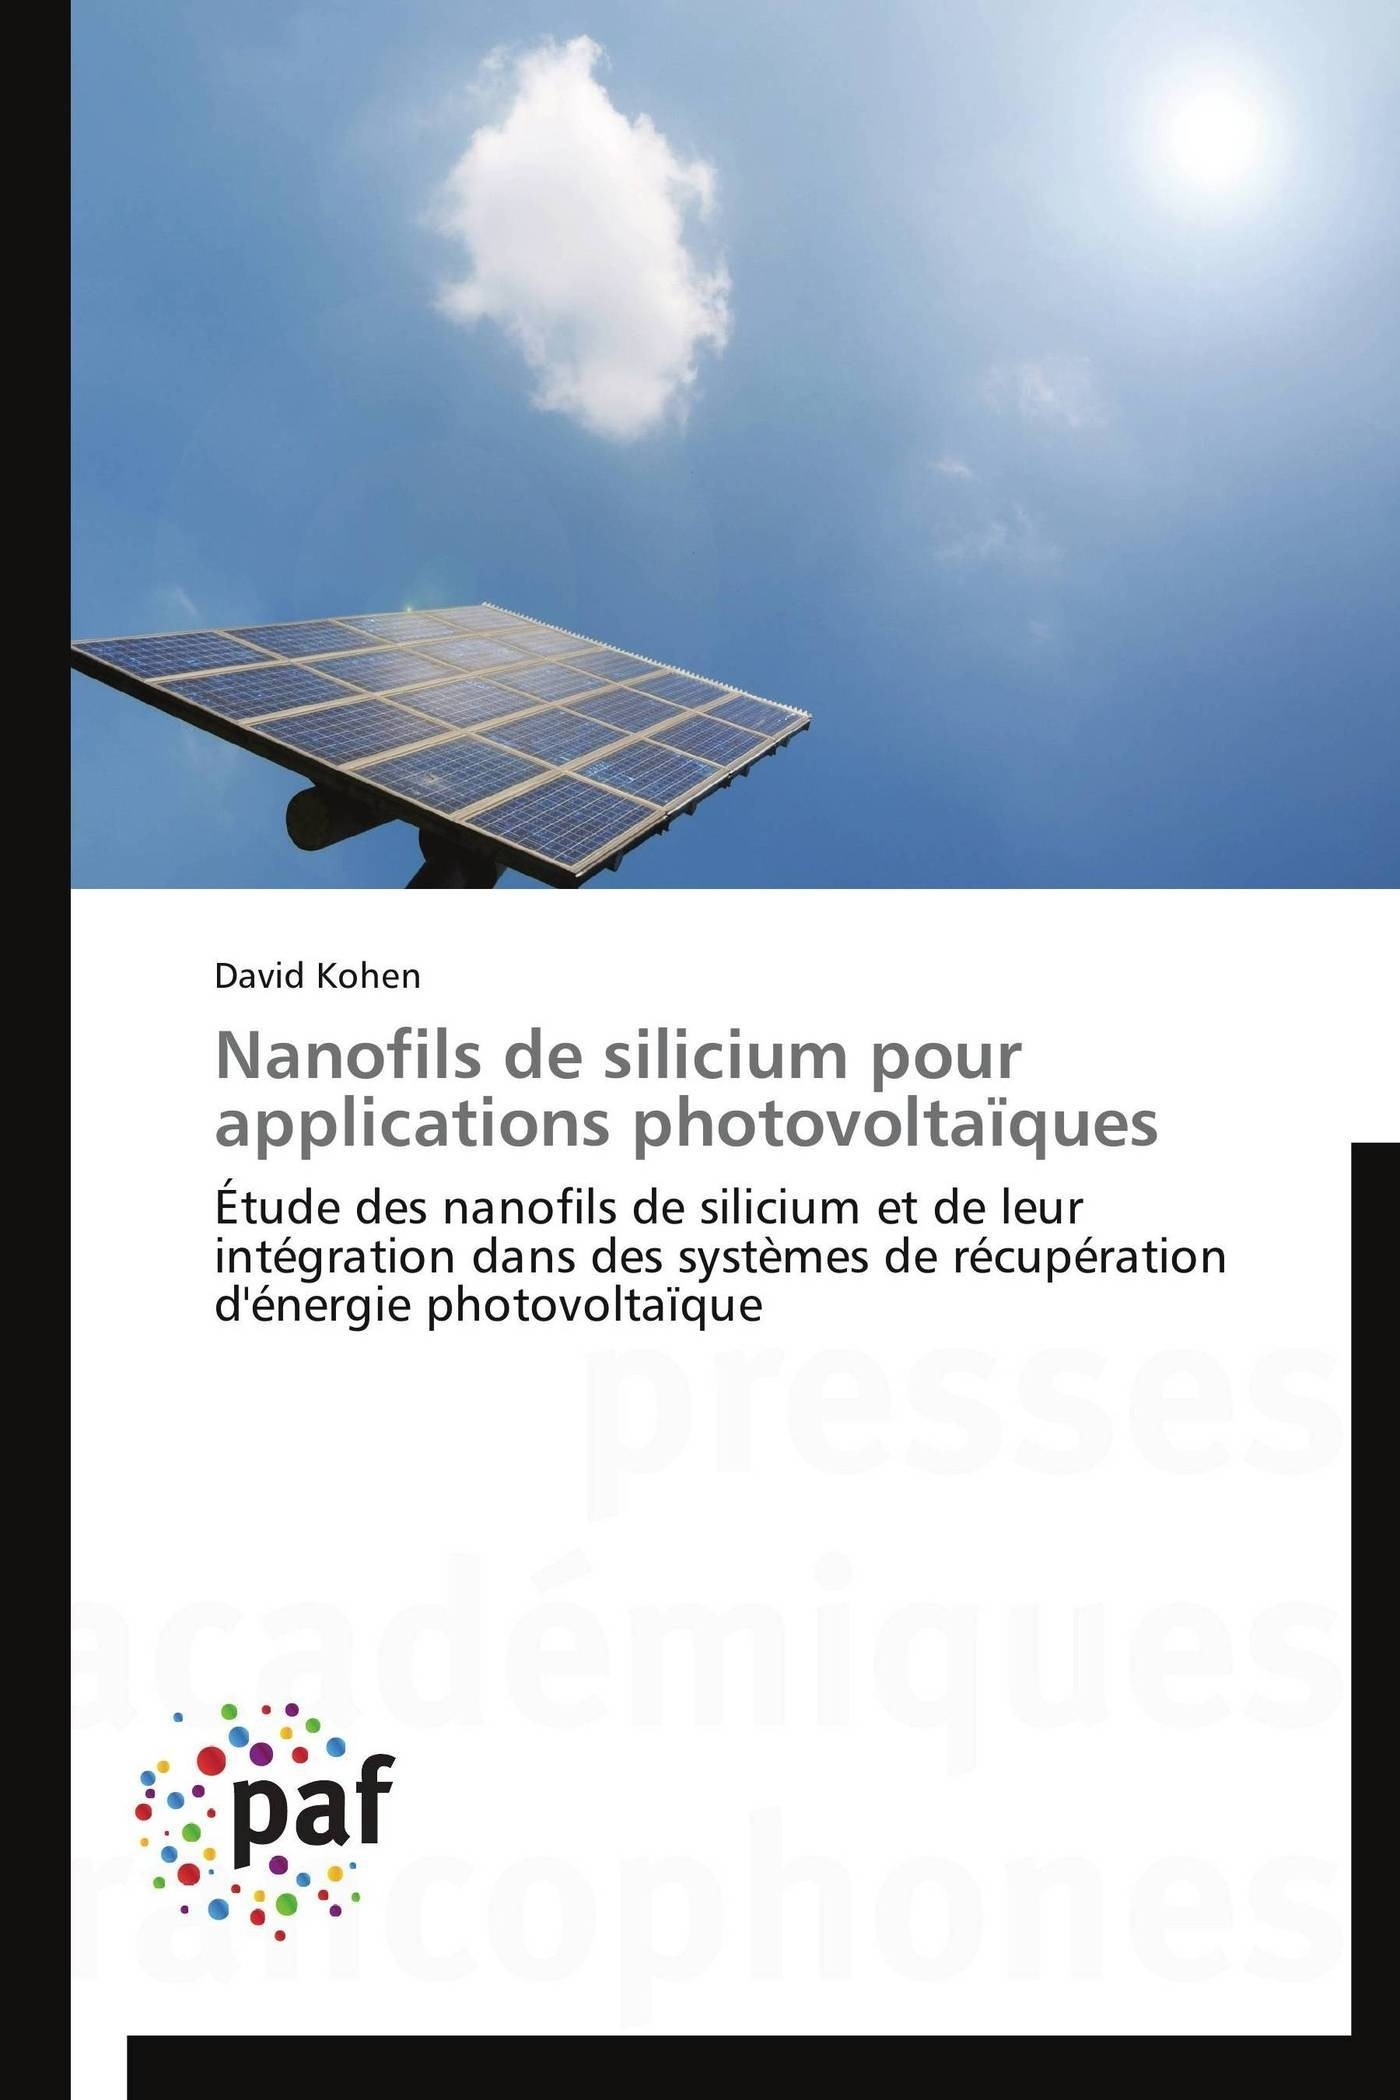 NANOFILS DE SILICIUM POUR APPLICATIONS PHOTOVOLTAIQUES